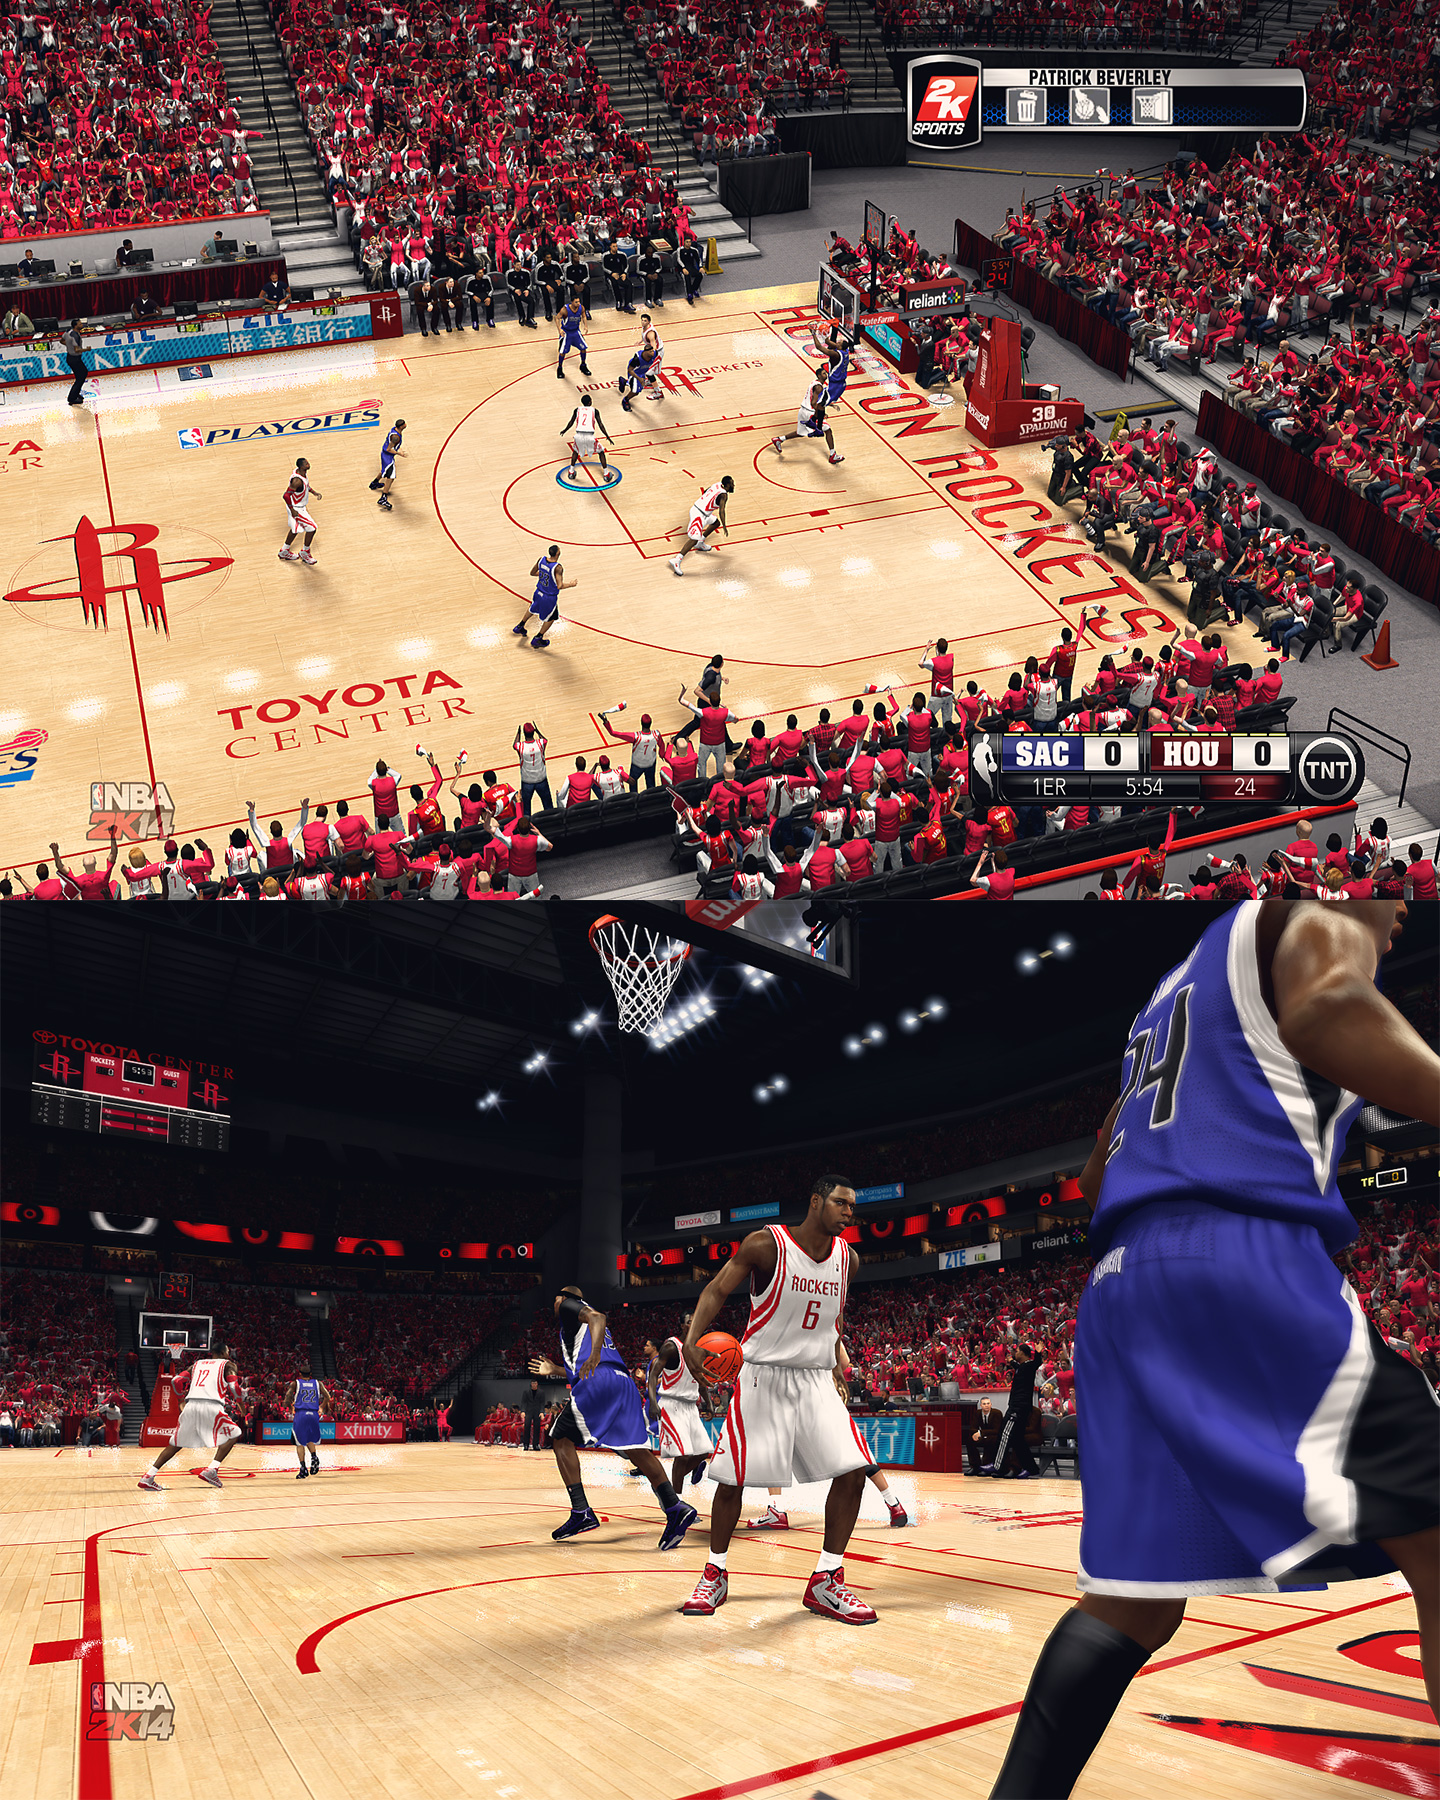 Houston Rockets Toyota Center - HD Arena